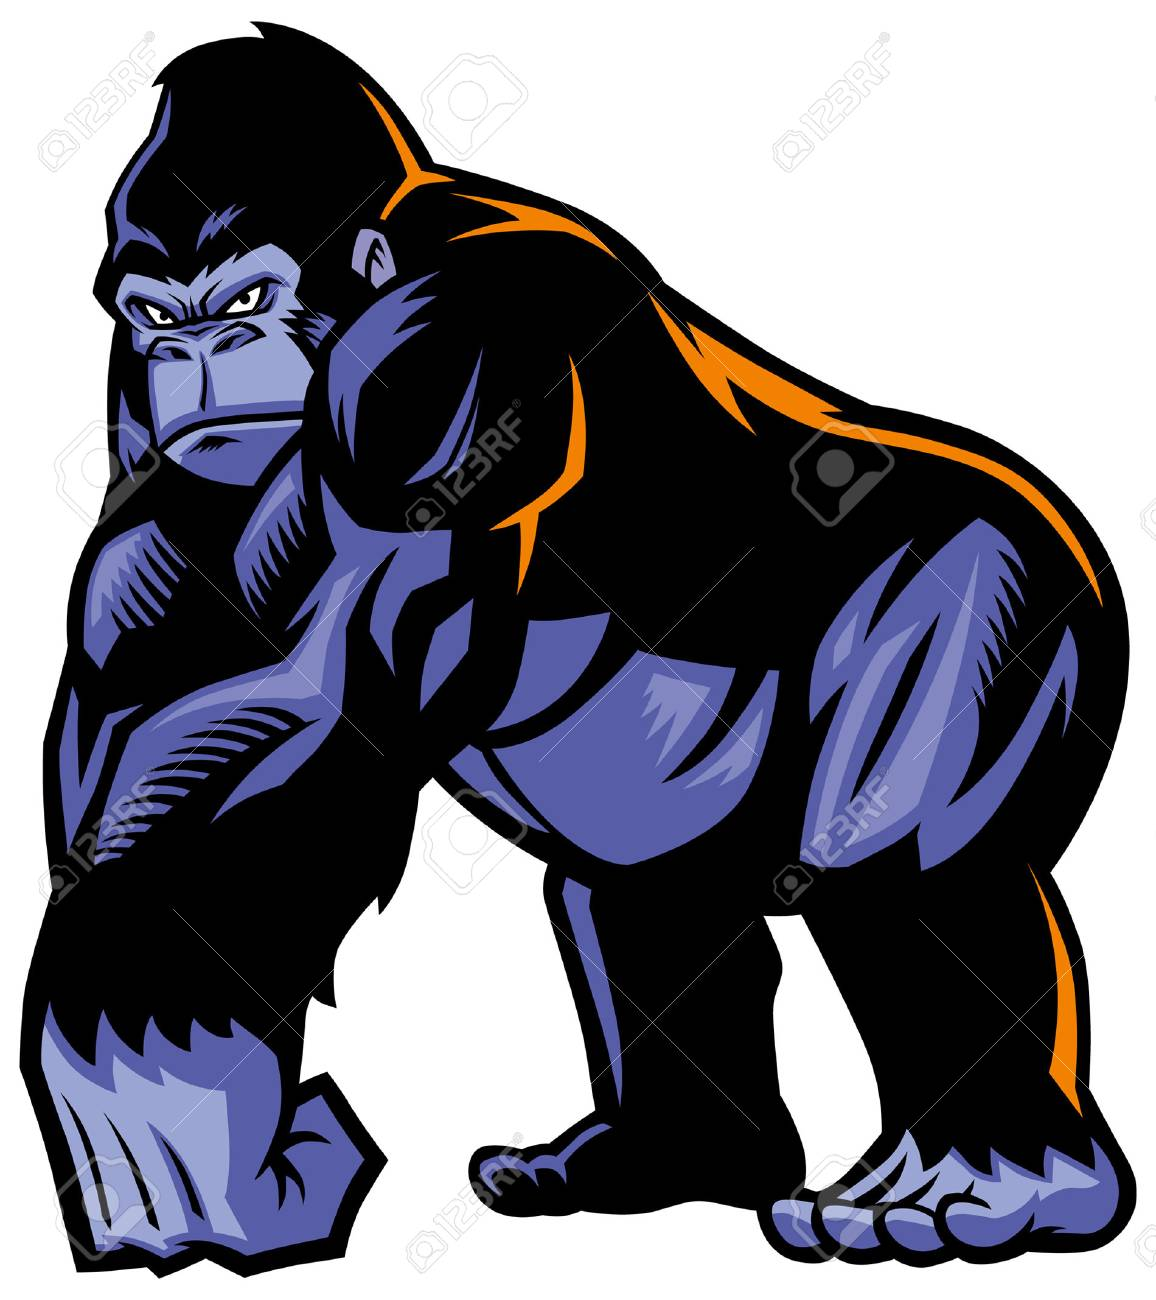 big gorilla mascot with muscle giant body - 103834736